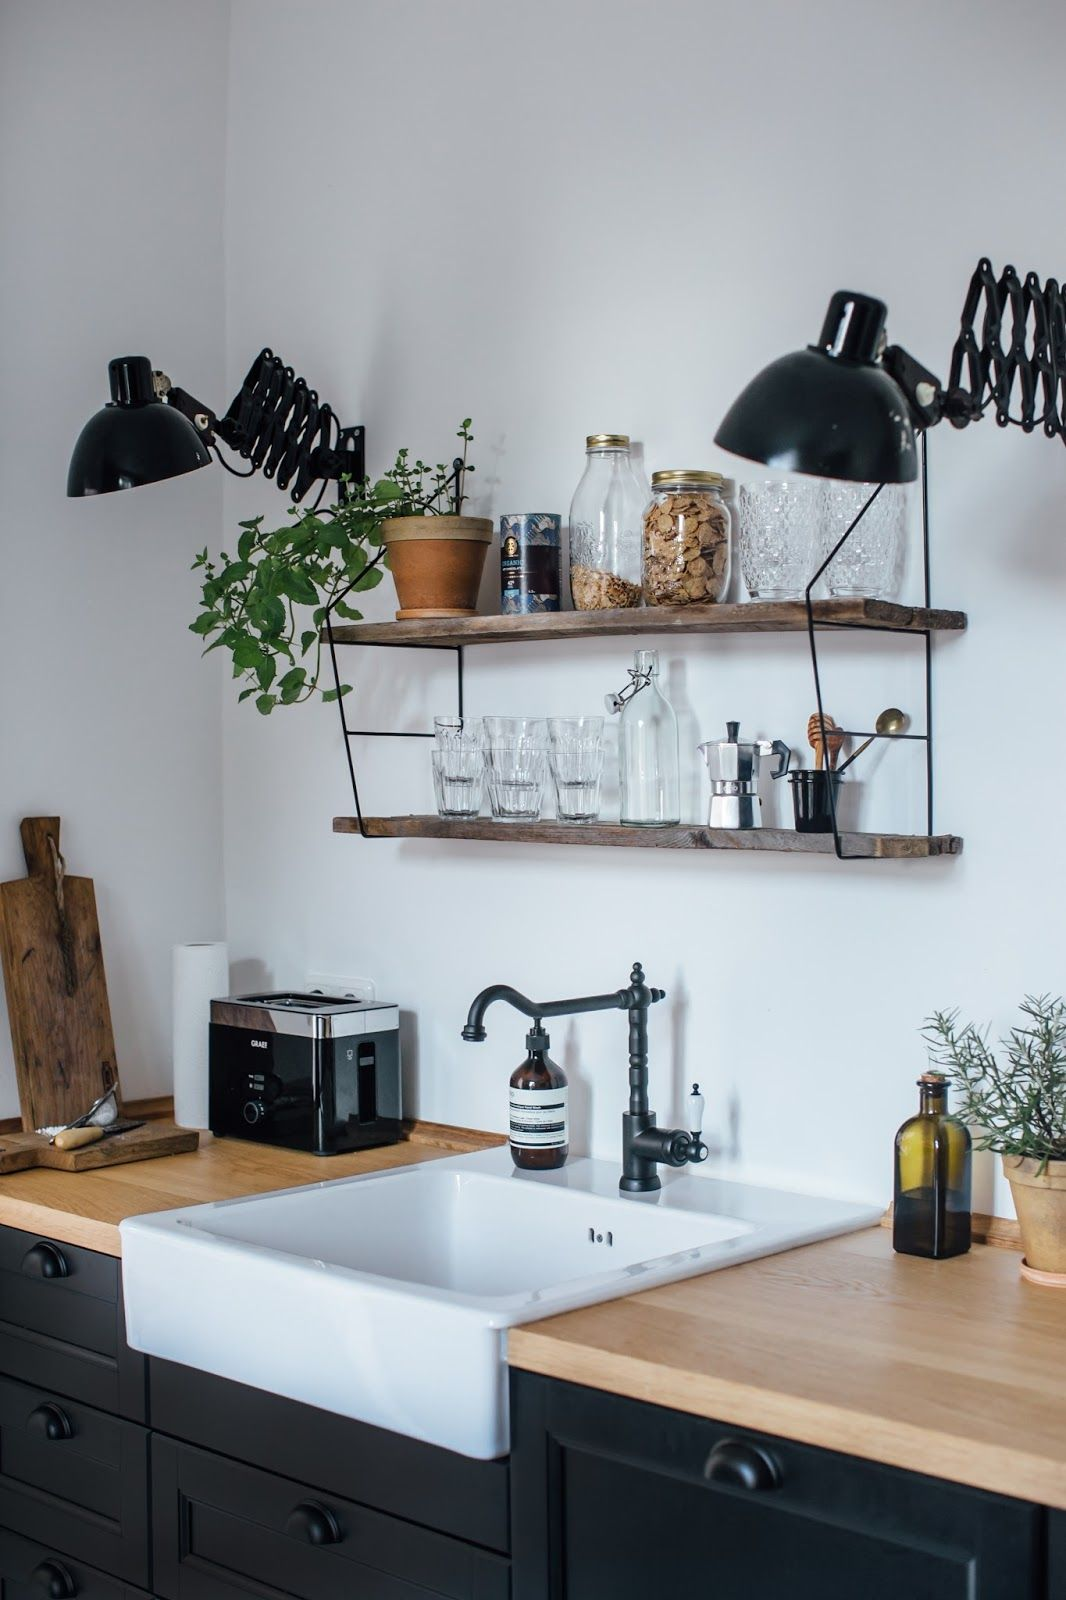 our food stories // ikea kitchen in the countryside | interior ...